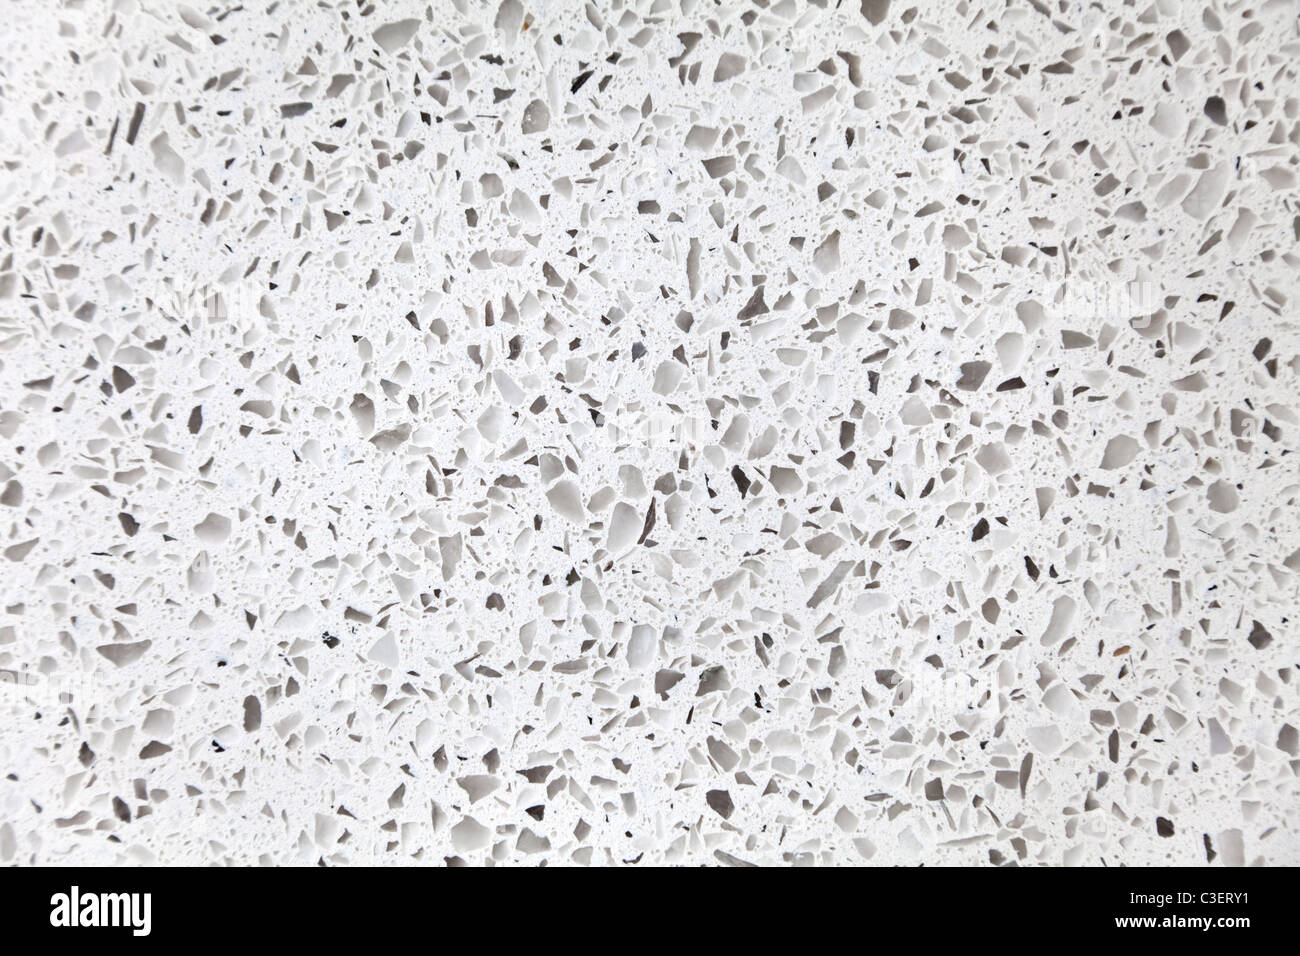 Stone texture close up shot - Stock Image